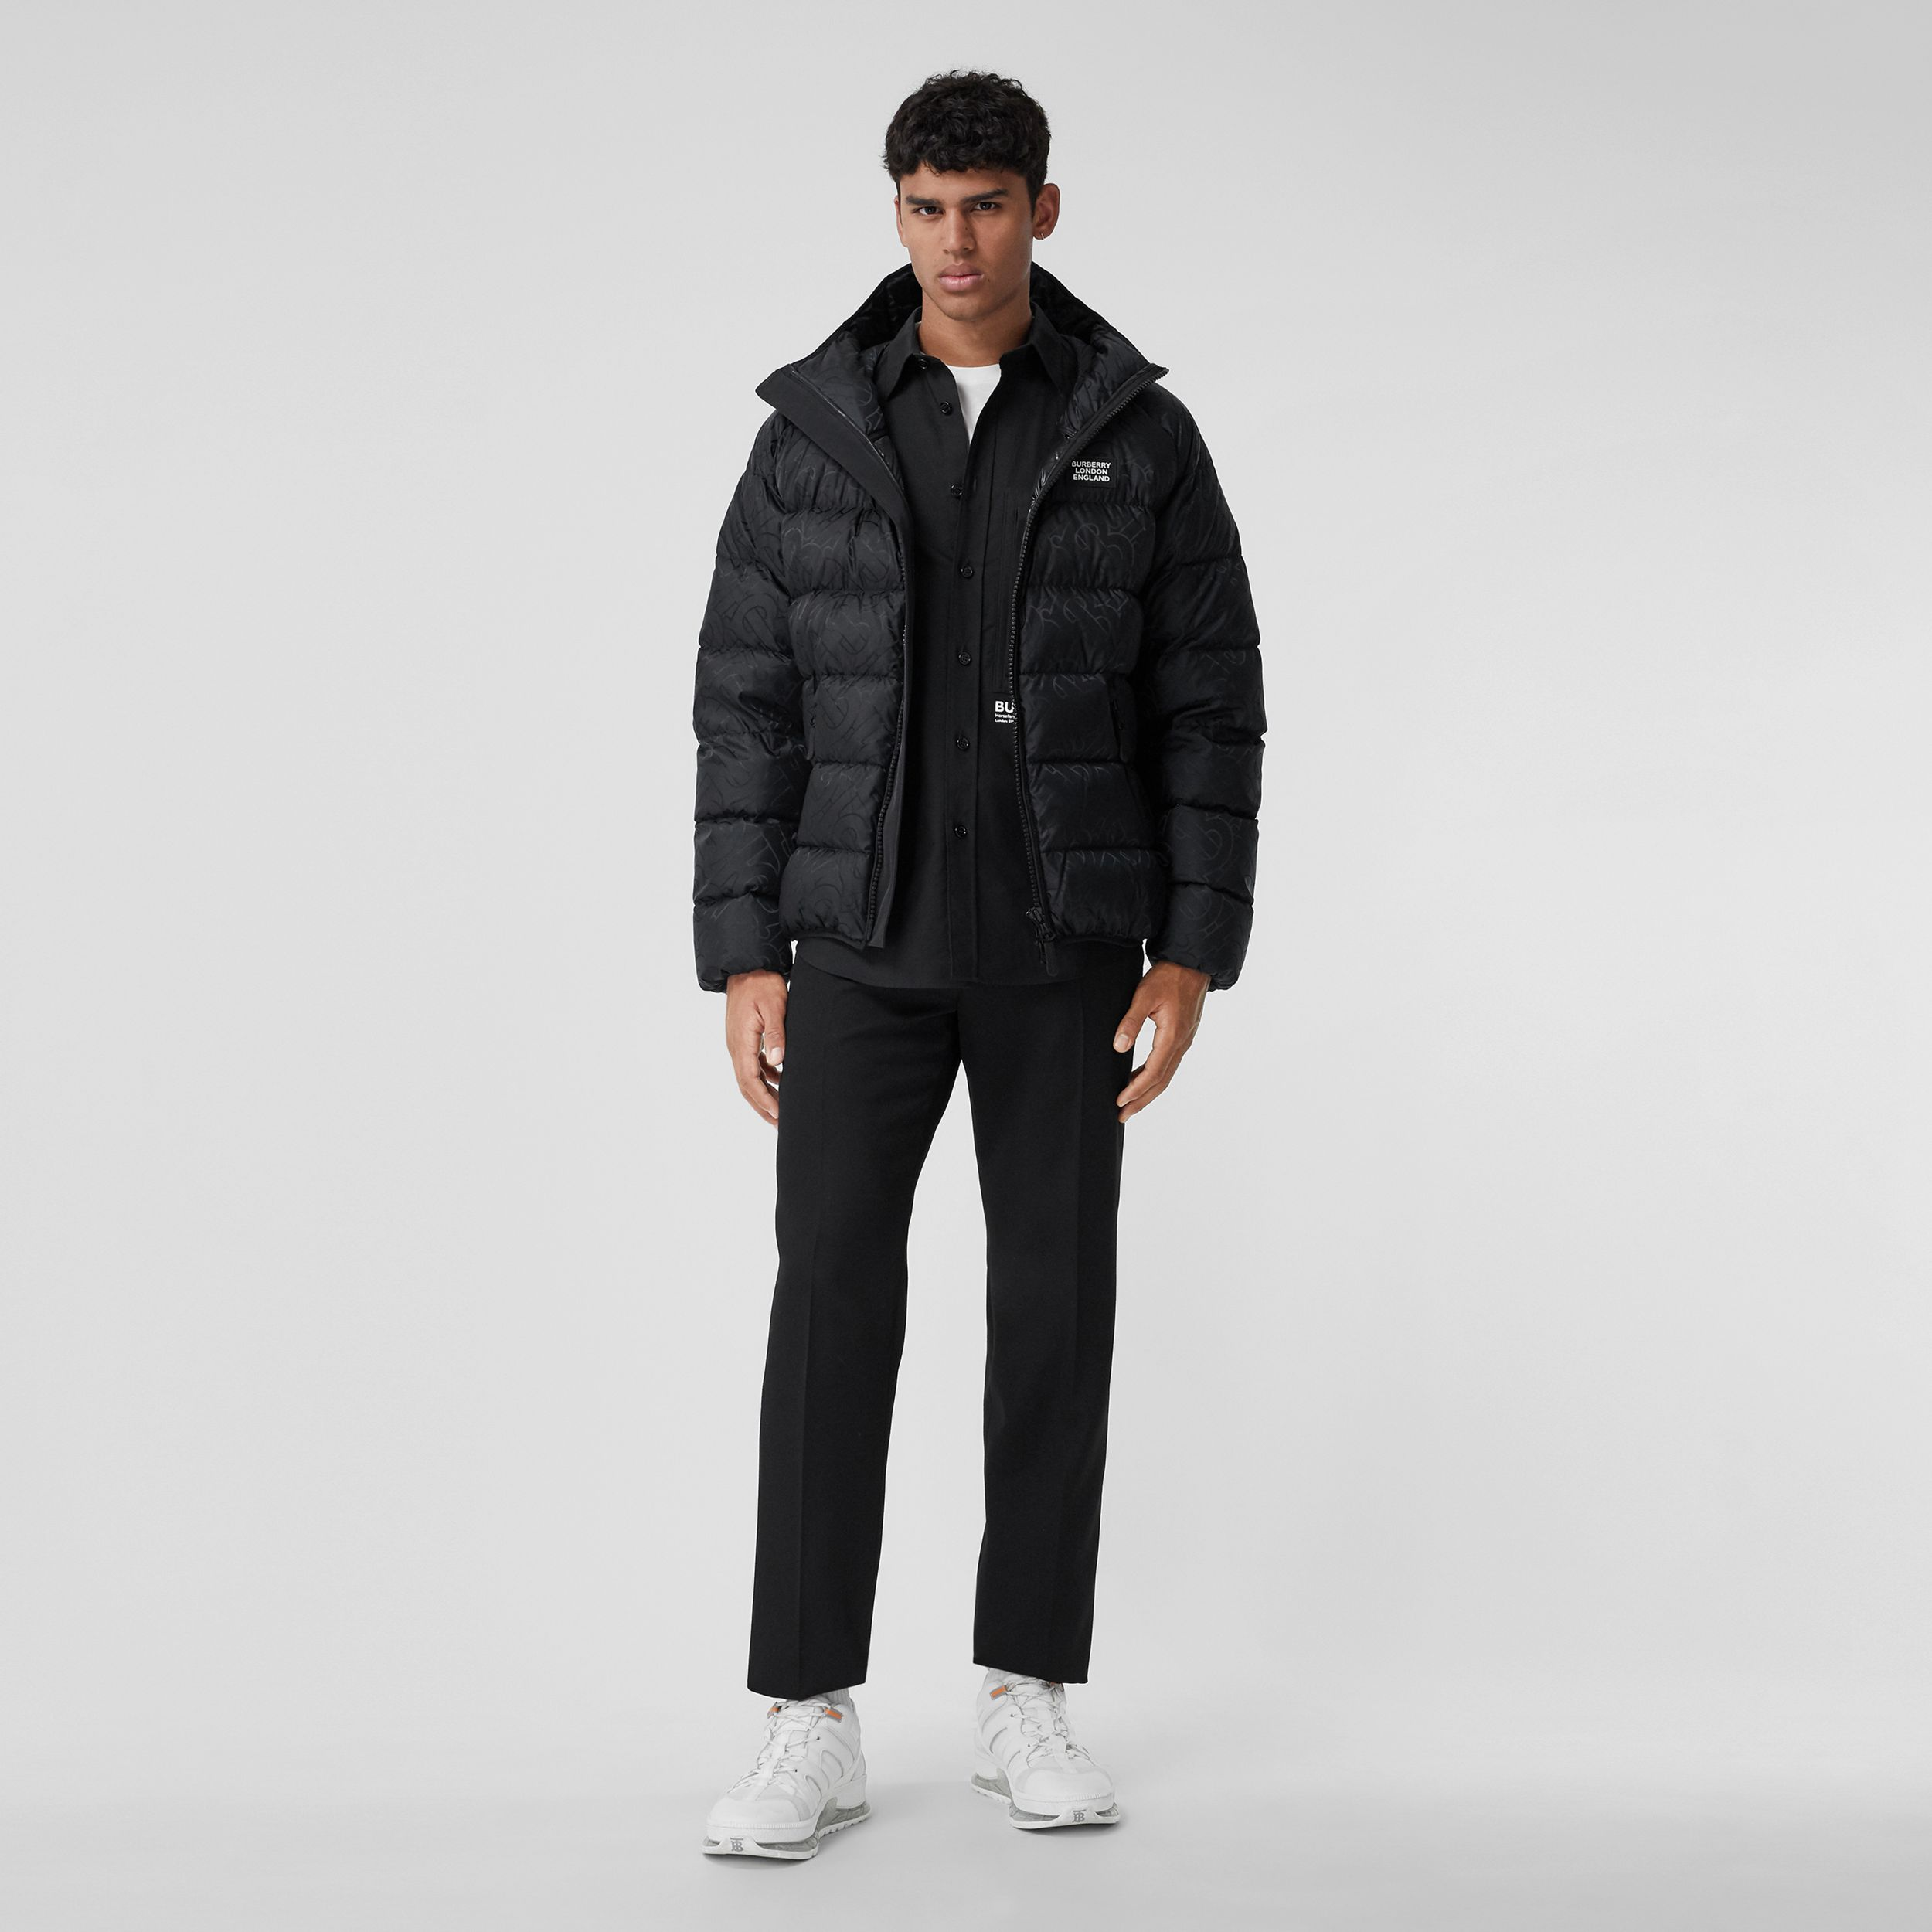 Monogram Jacquard Hooded Puffer Jacket in Black - Men | Burberry United States - 1